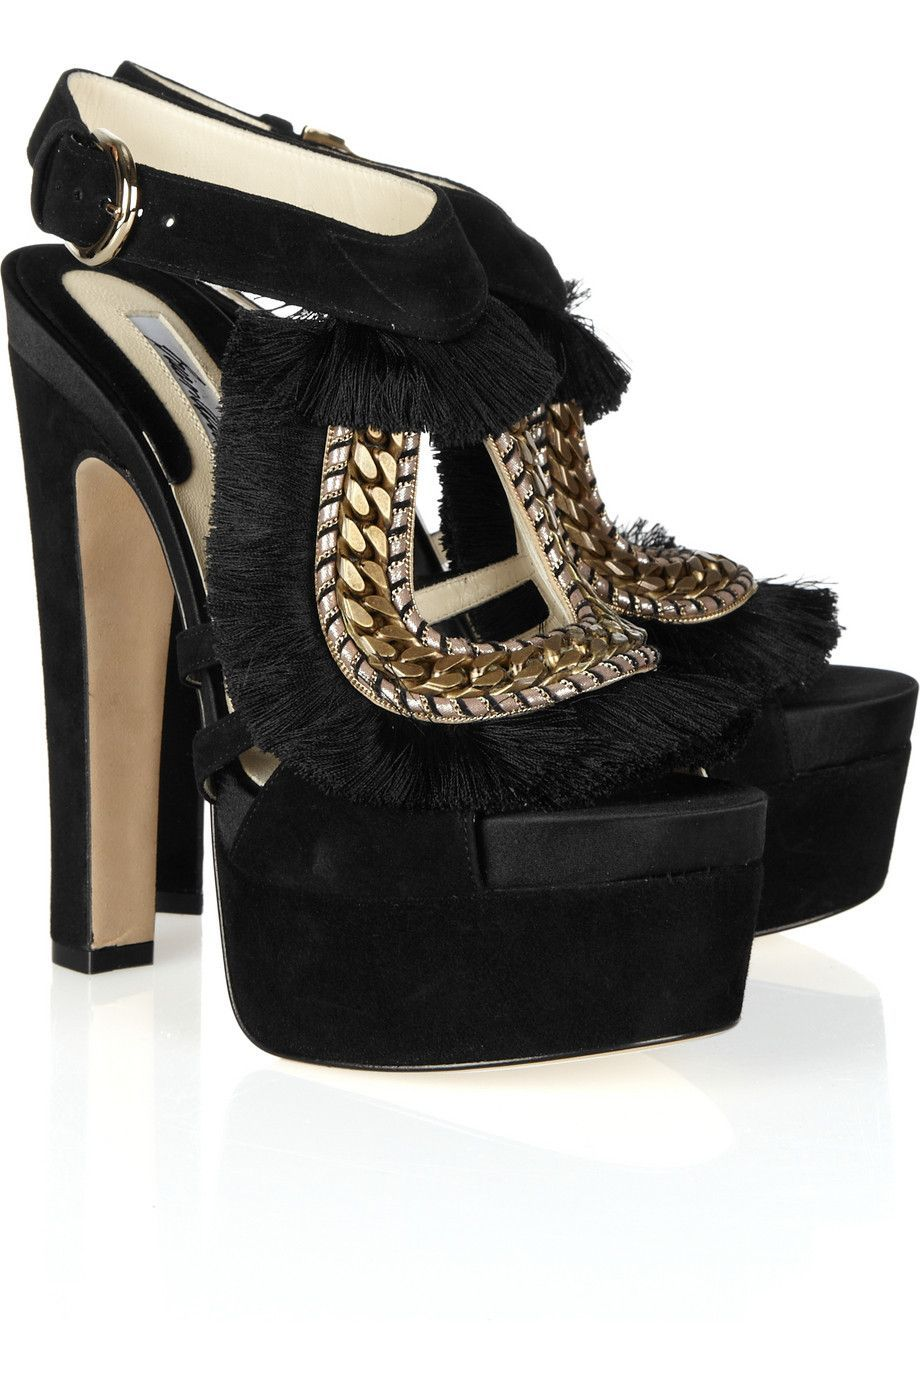 184d84b29a2b WANT WANT WANT! BRIAN ATWOOD Blanco fringe and chain-trimmed suede ...